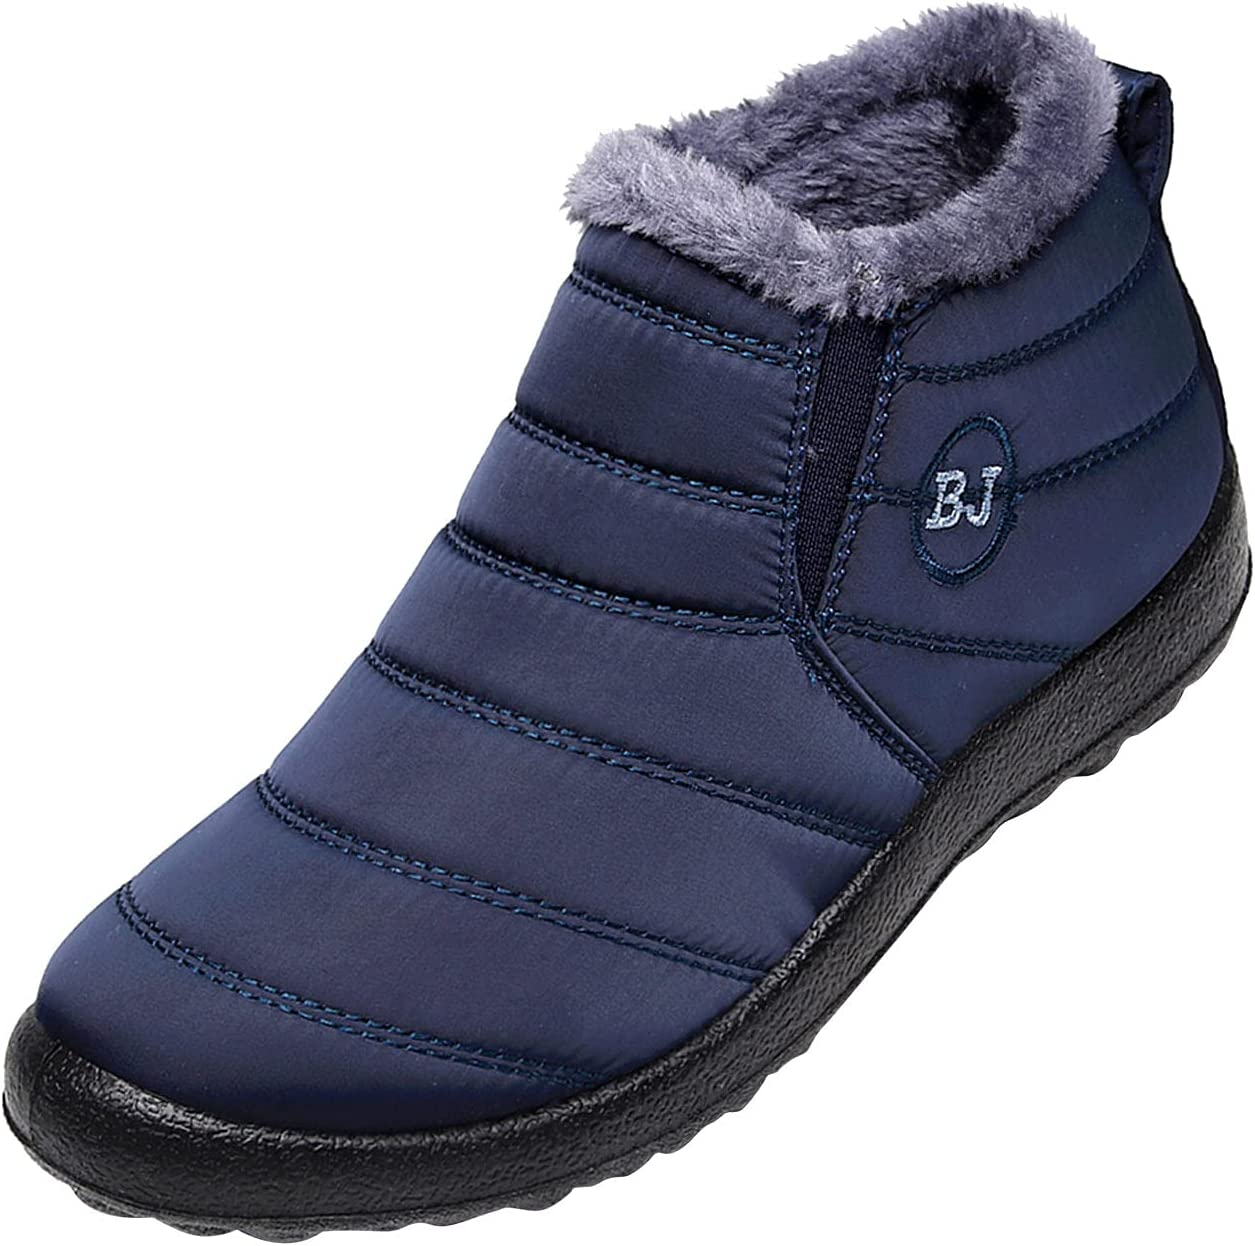 Handmade Old Beijing Men's Cotton 2021new shipping free shipping Snow Waterpr Warm Boots Very popular Shoes